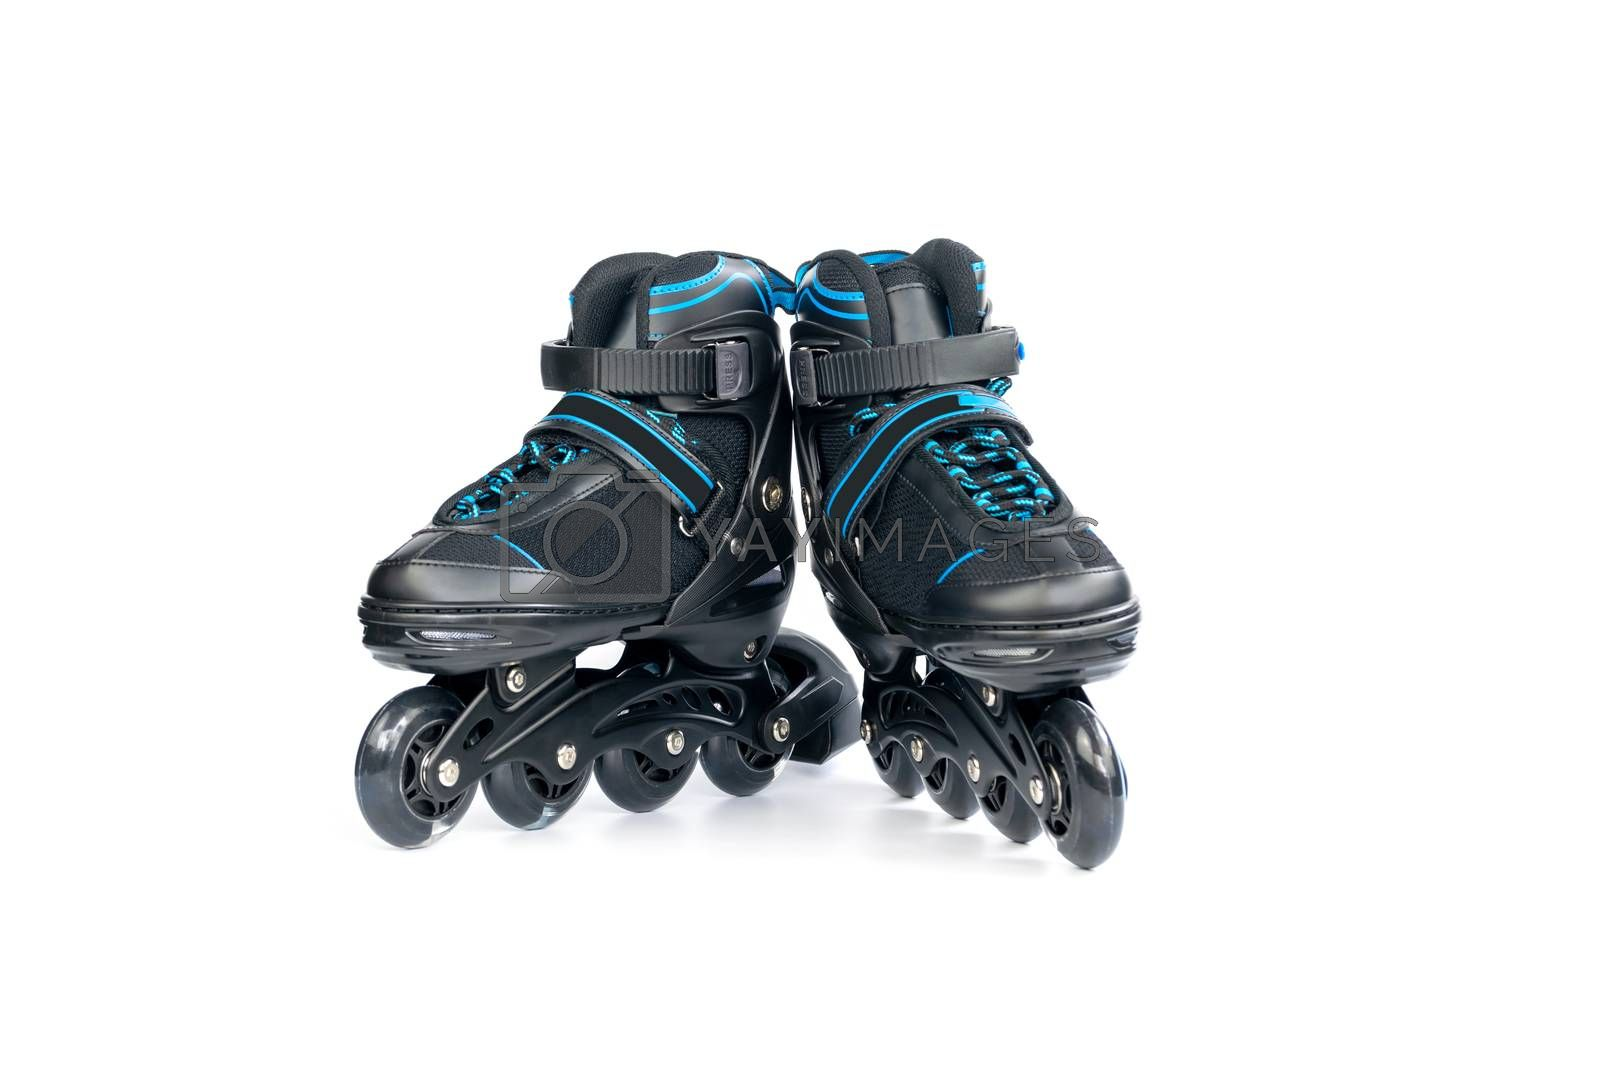 Pair of children's new inline skates isolated on white background.